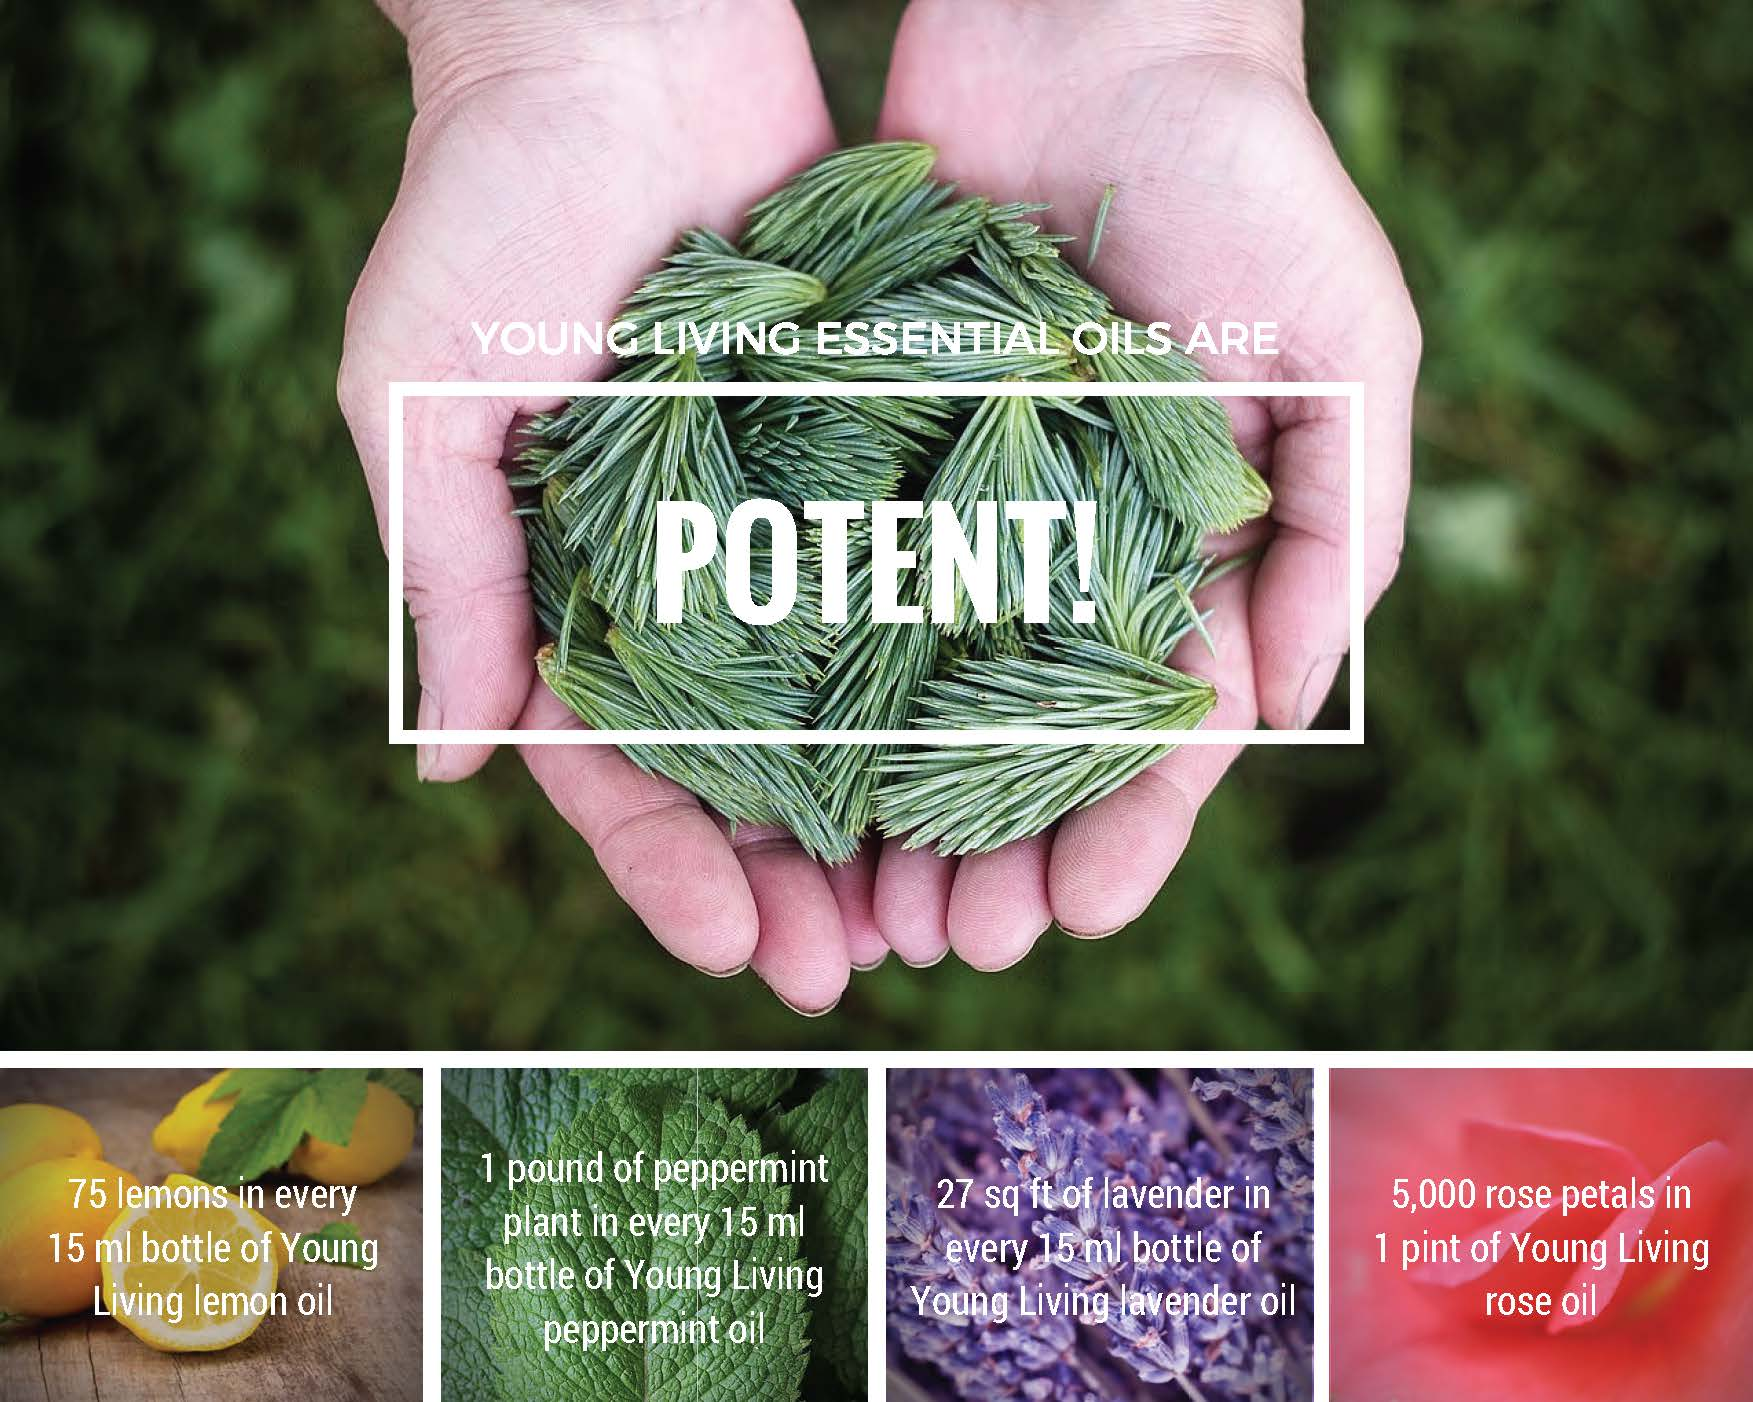 7 reasons why essential oils rock